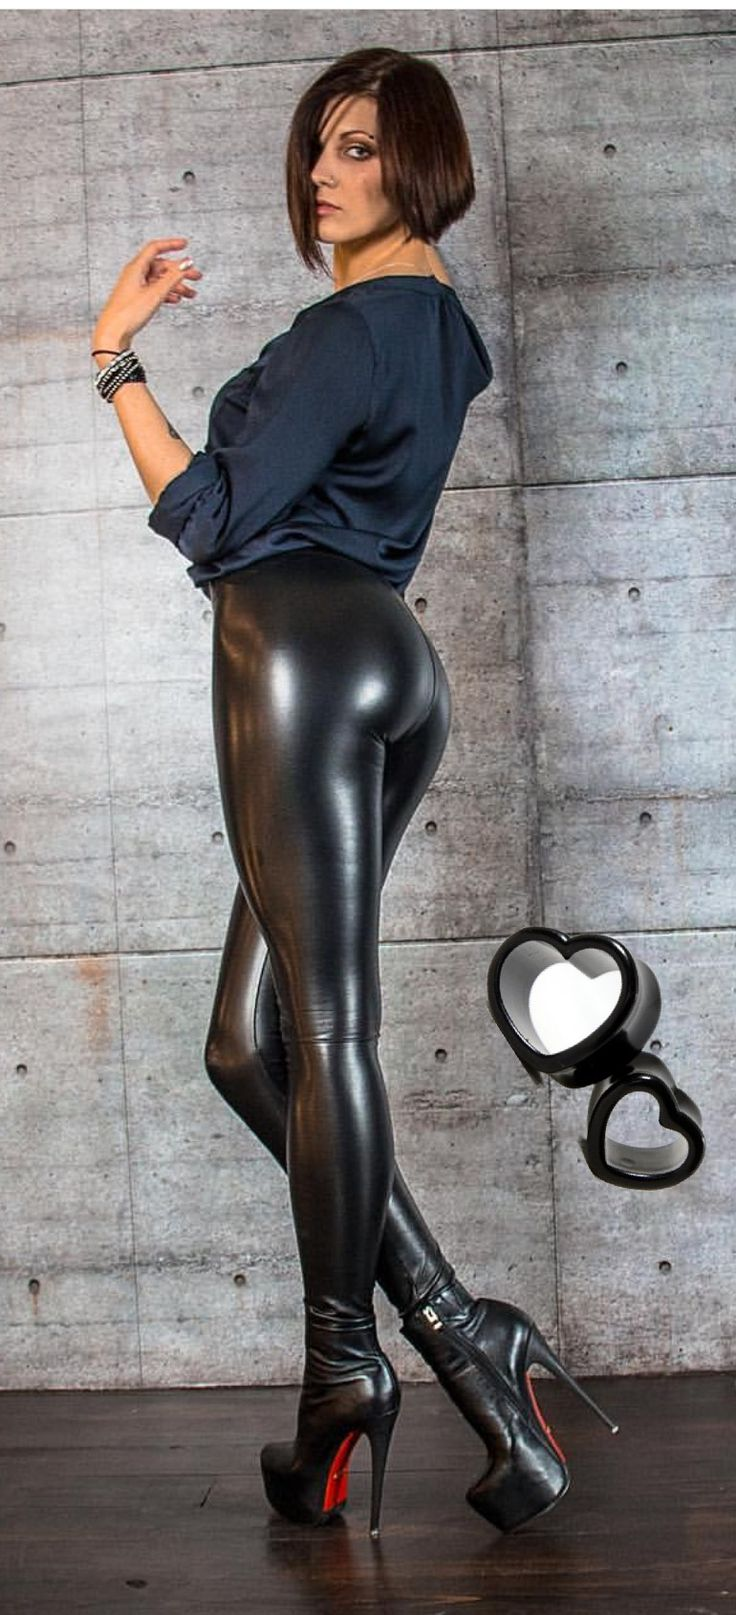 839 best leder leggings images on pinterest leather trousers beautiful clothes and bib overalls. Black Bedroom Furniture Sets. Home Design Ideas